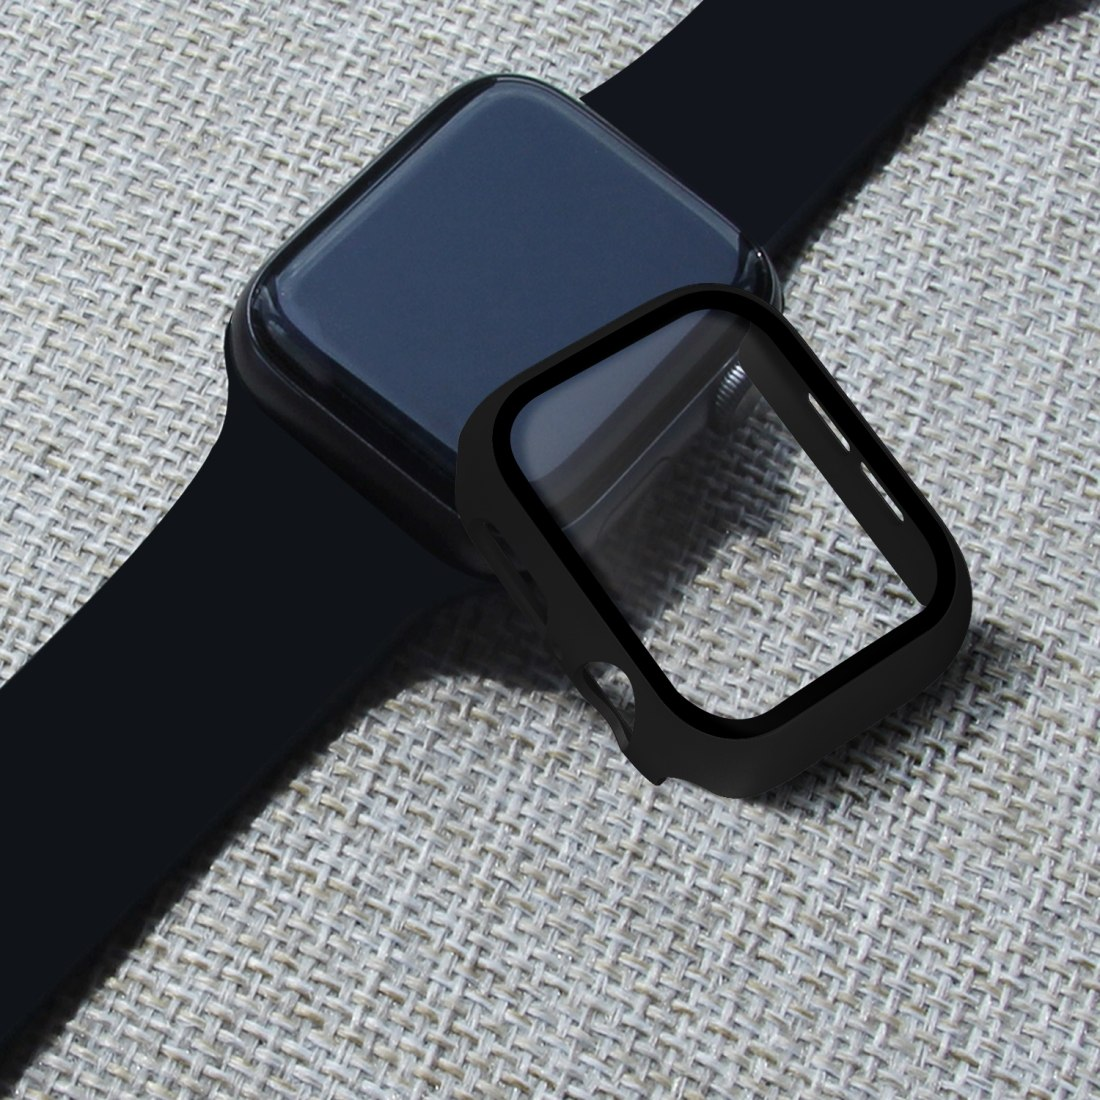 Enkay Displayskydd med Ram för Apple Watch serie 5 / 4 40mm - Av härdat glas